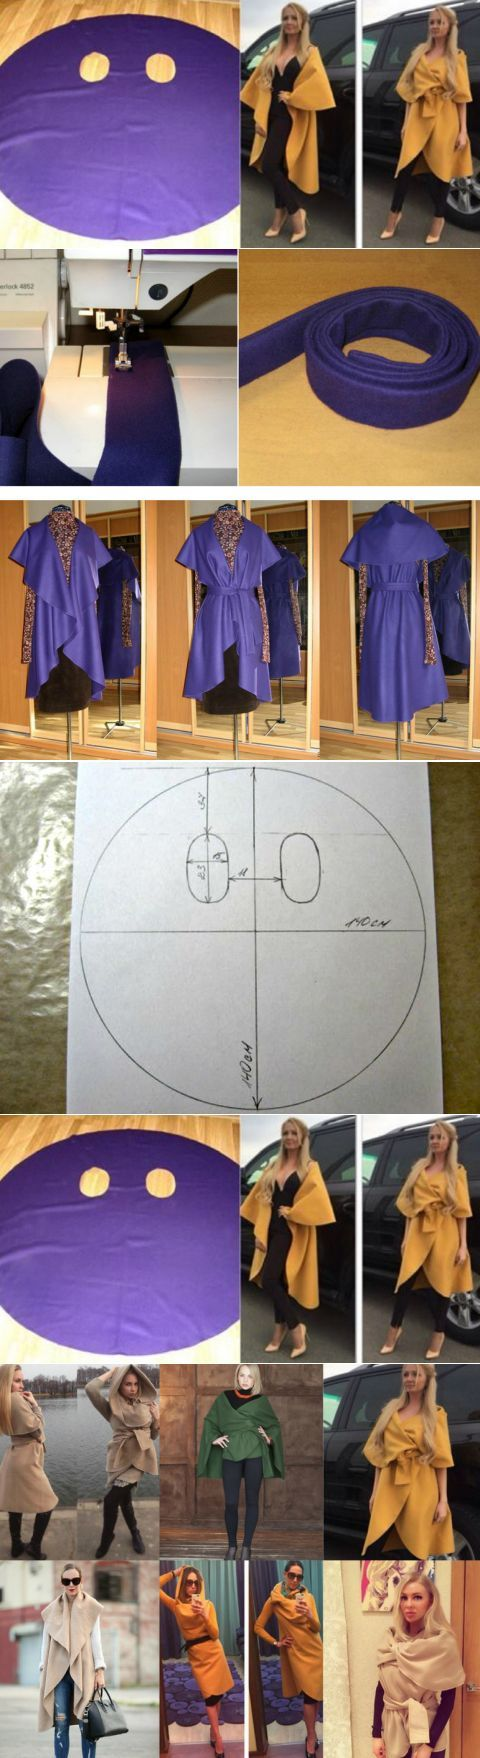 Cool one piece coat, jacket or dress